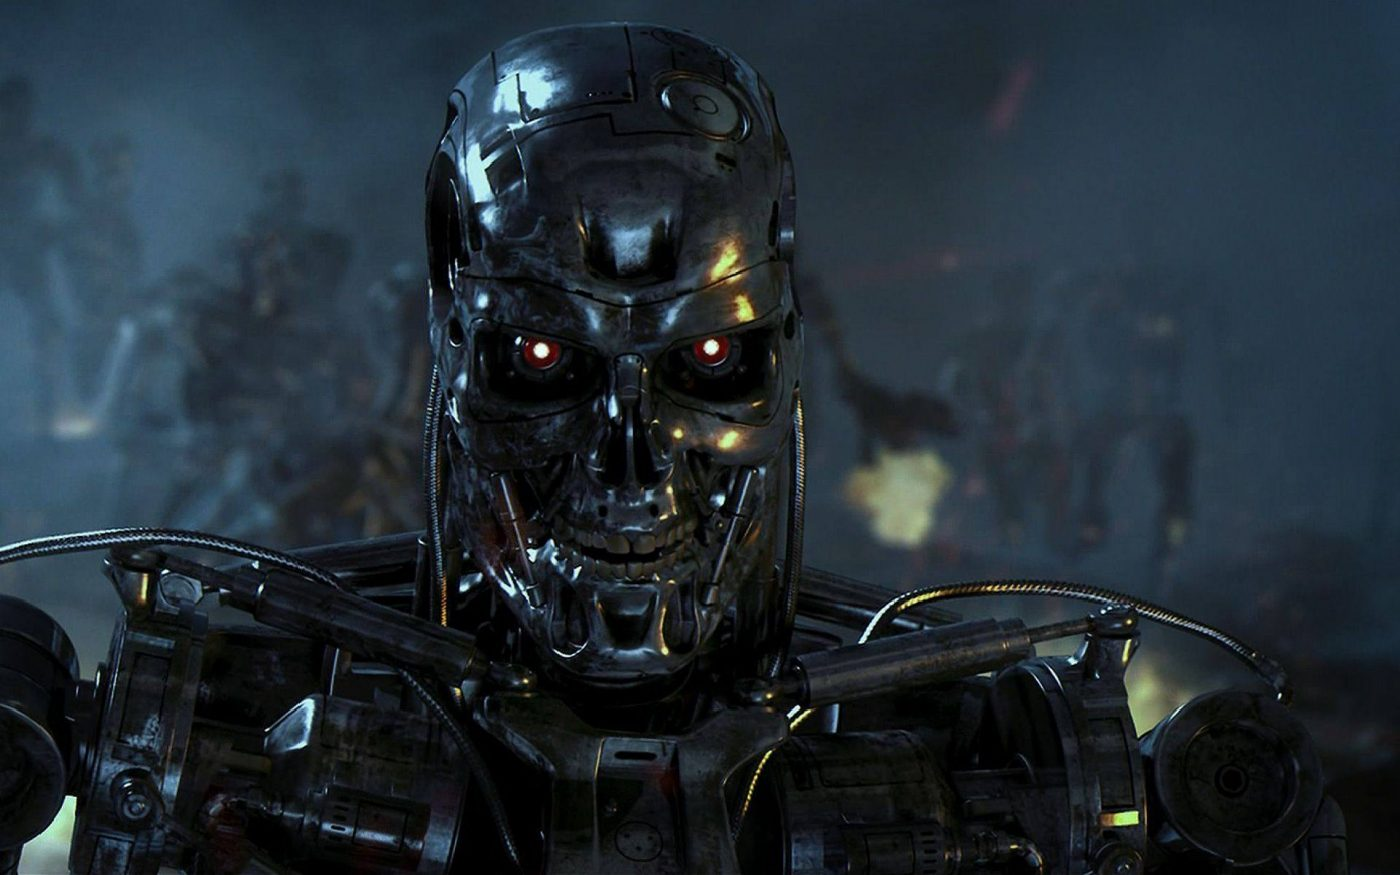 Terminator: Genisys Official Movie Trailer